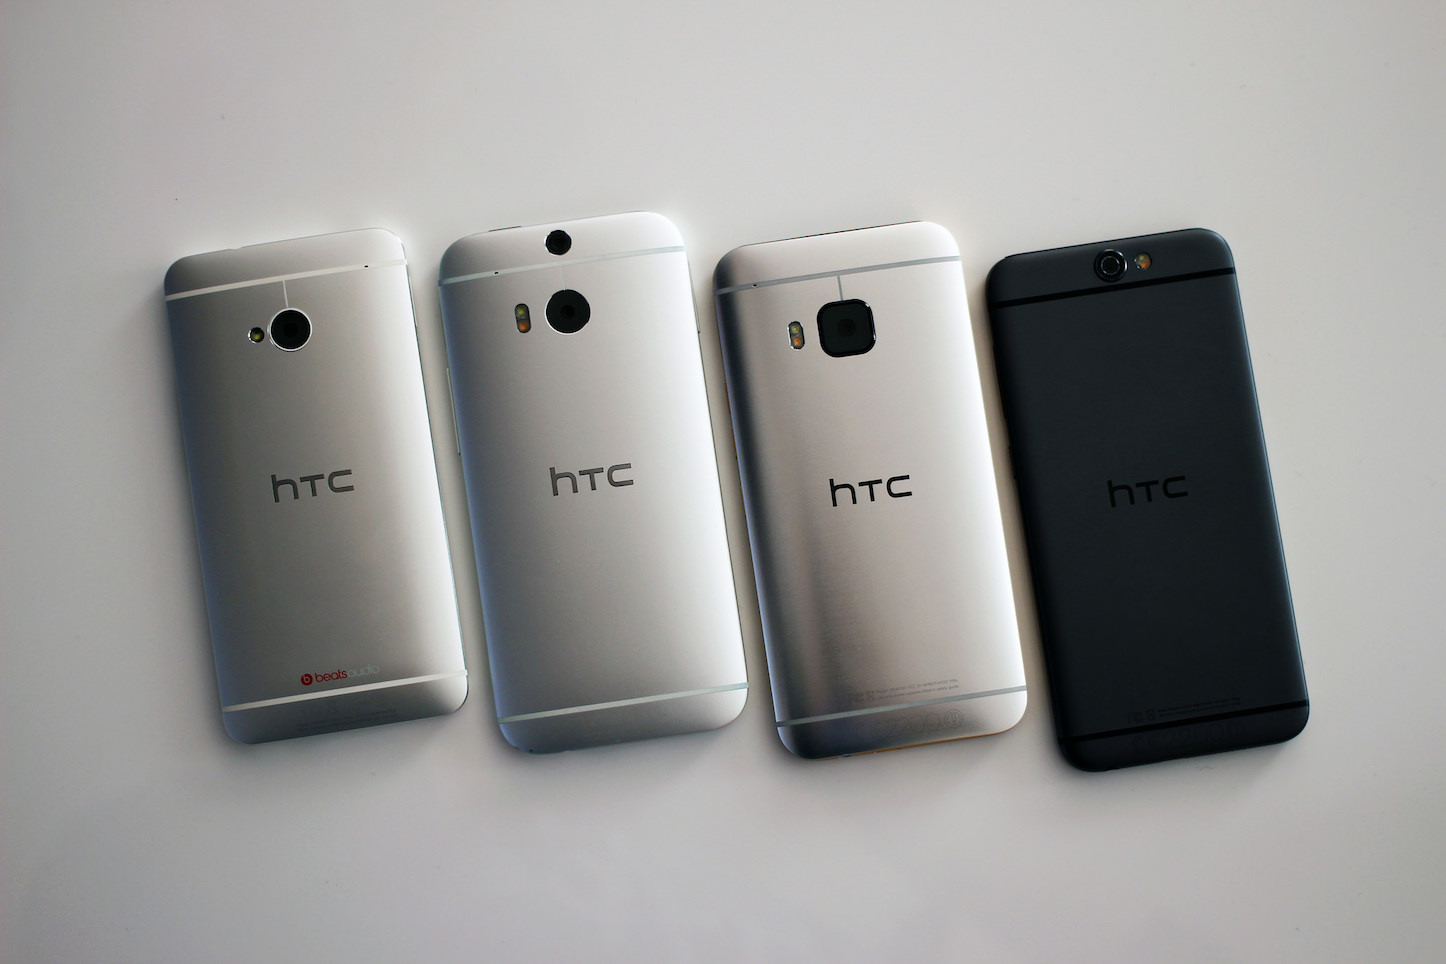 All htc one